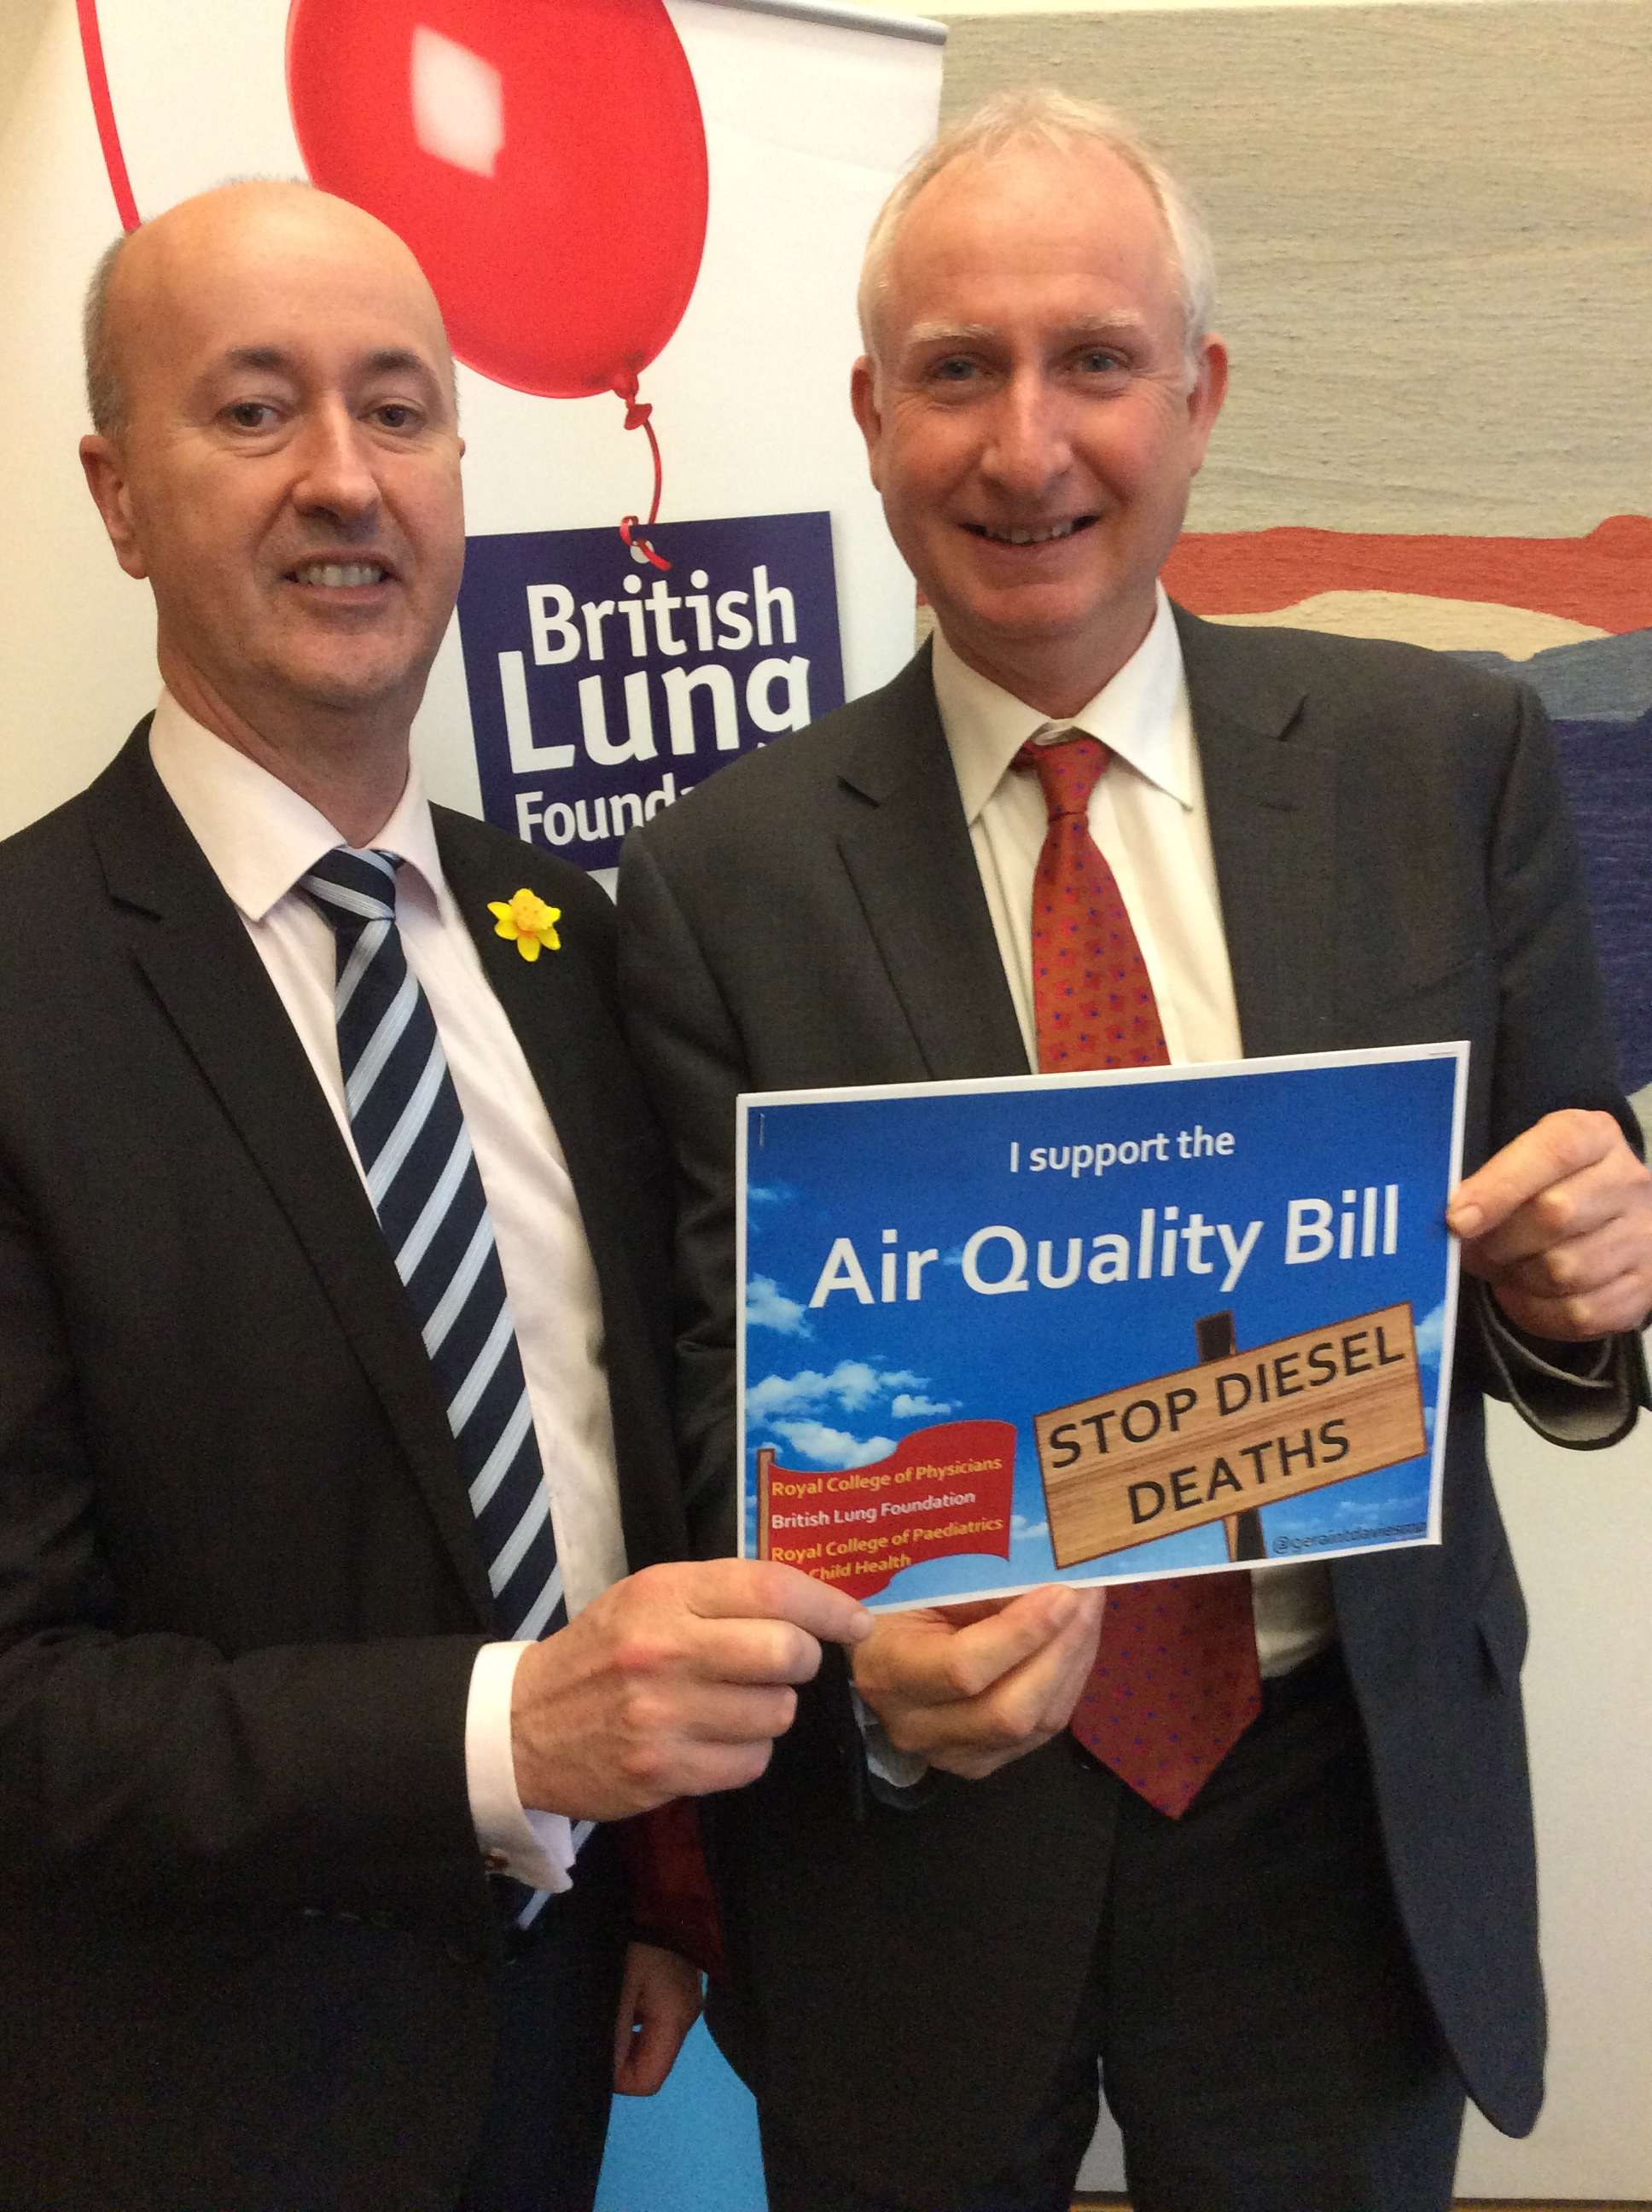 Air_Quality_Bill.jpeg